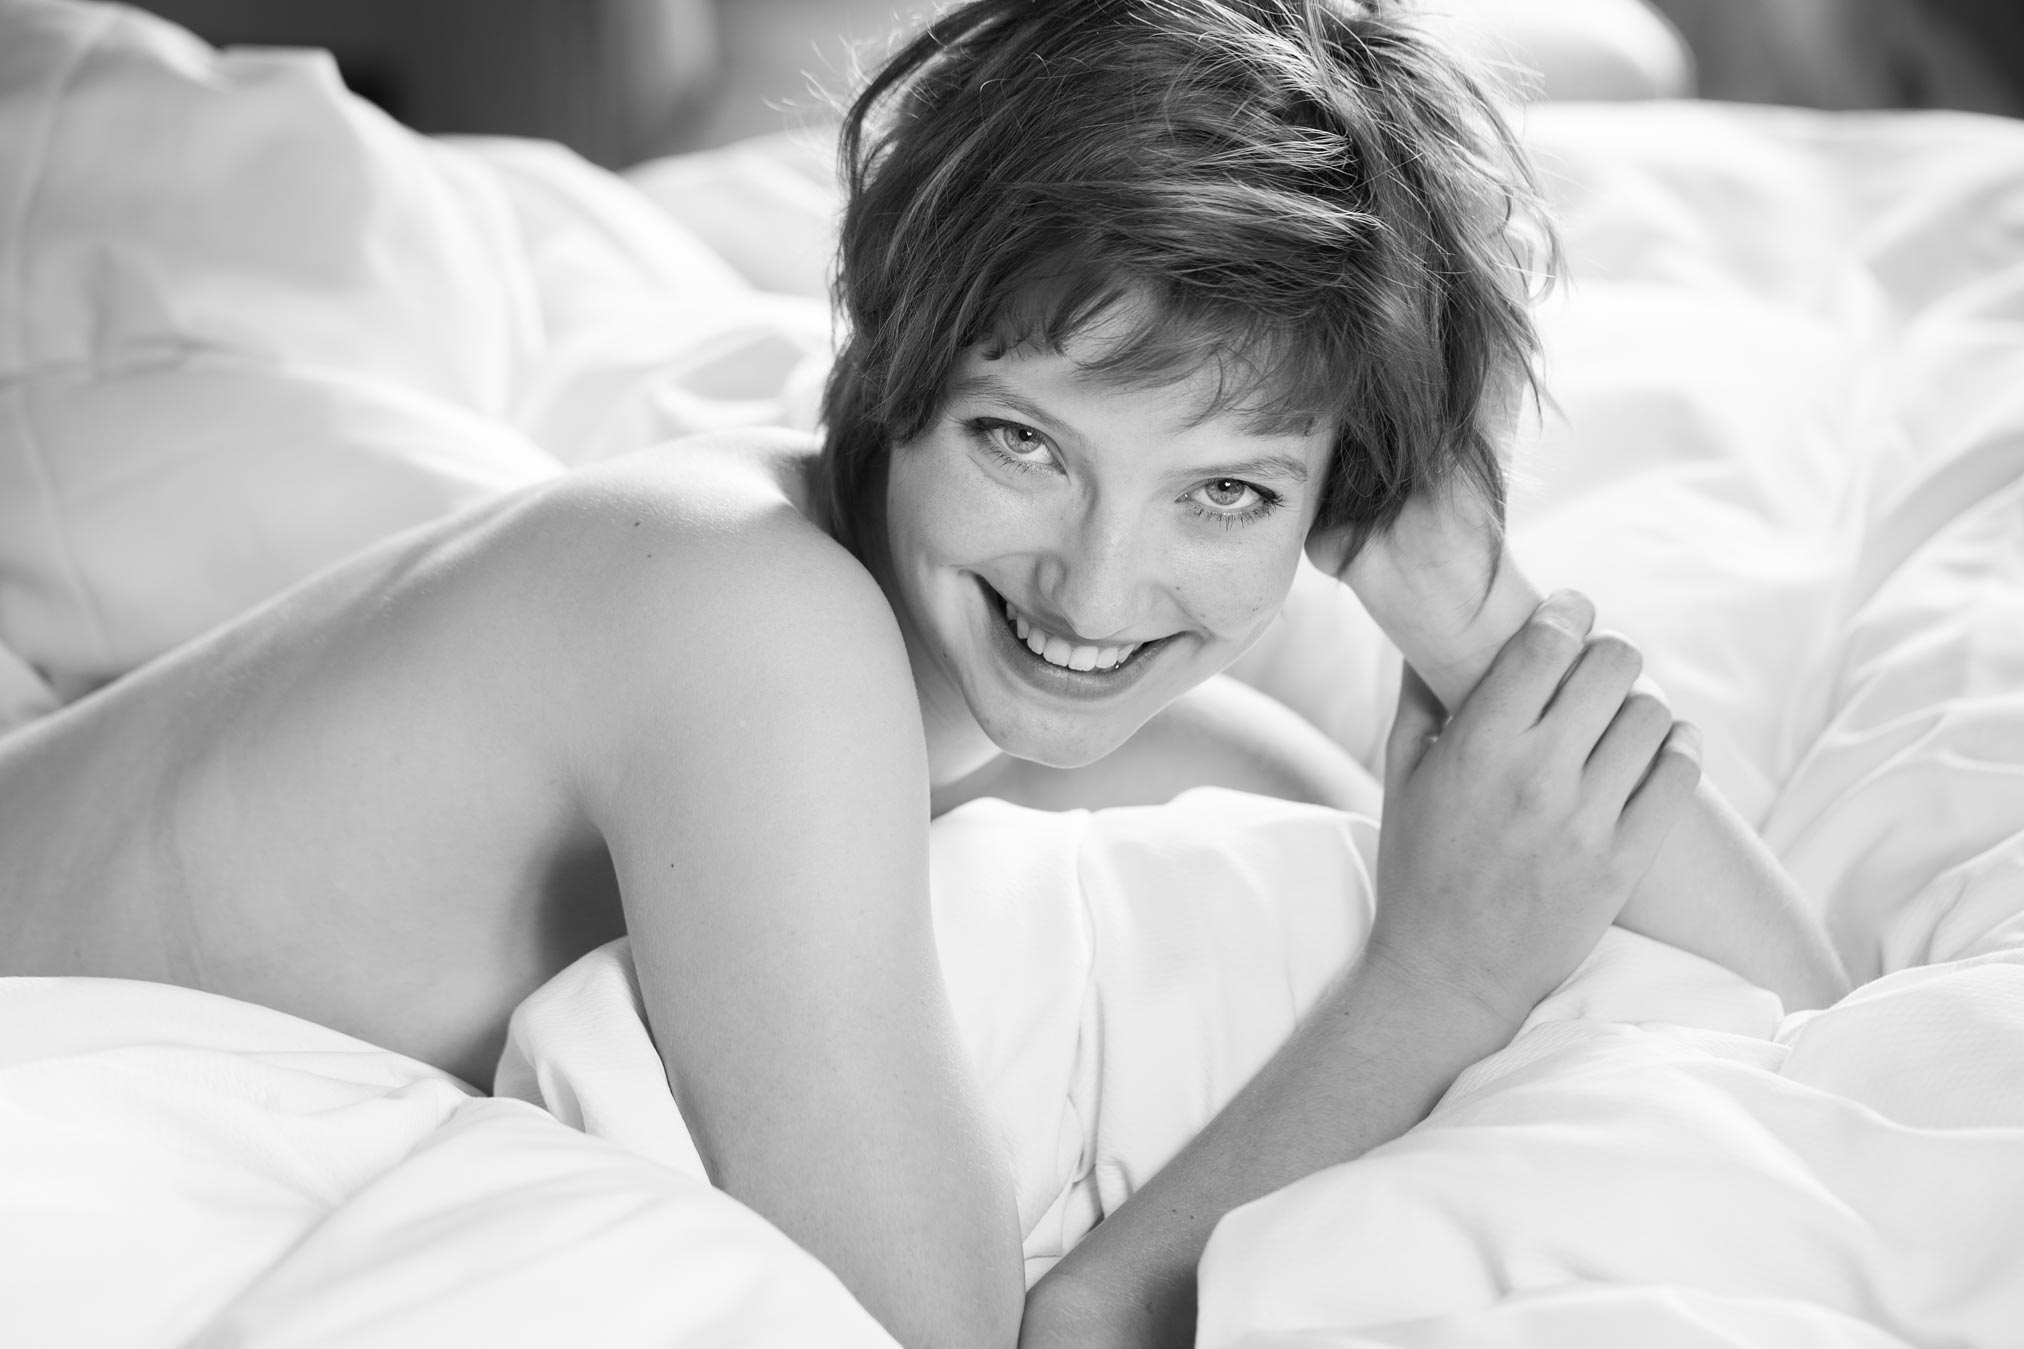 Claire Rammelkamp naked on my bed in Hotel 38 Clifton Bristol.